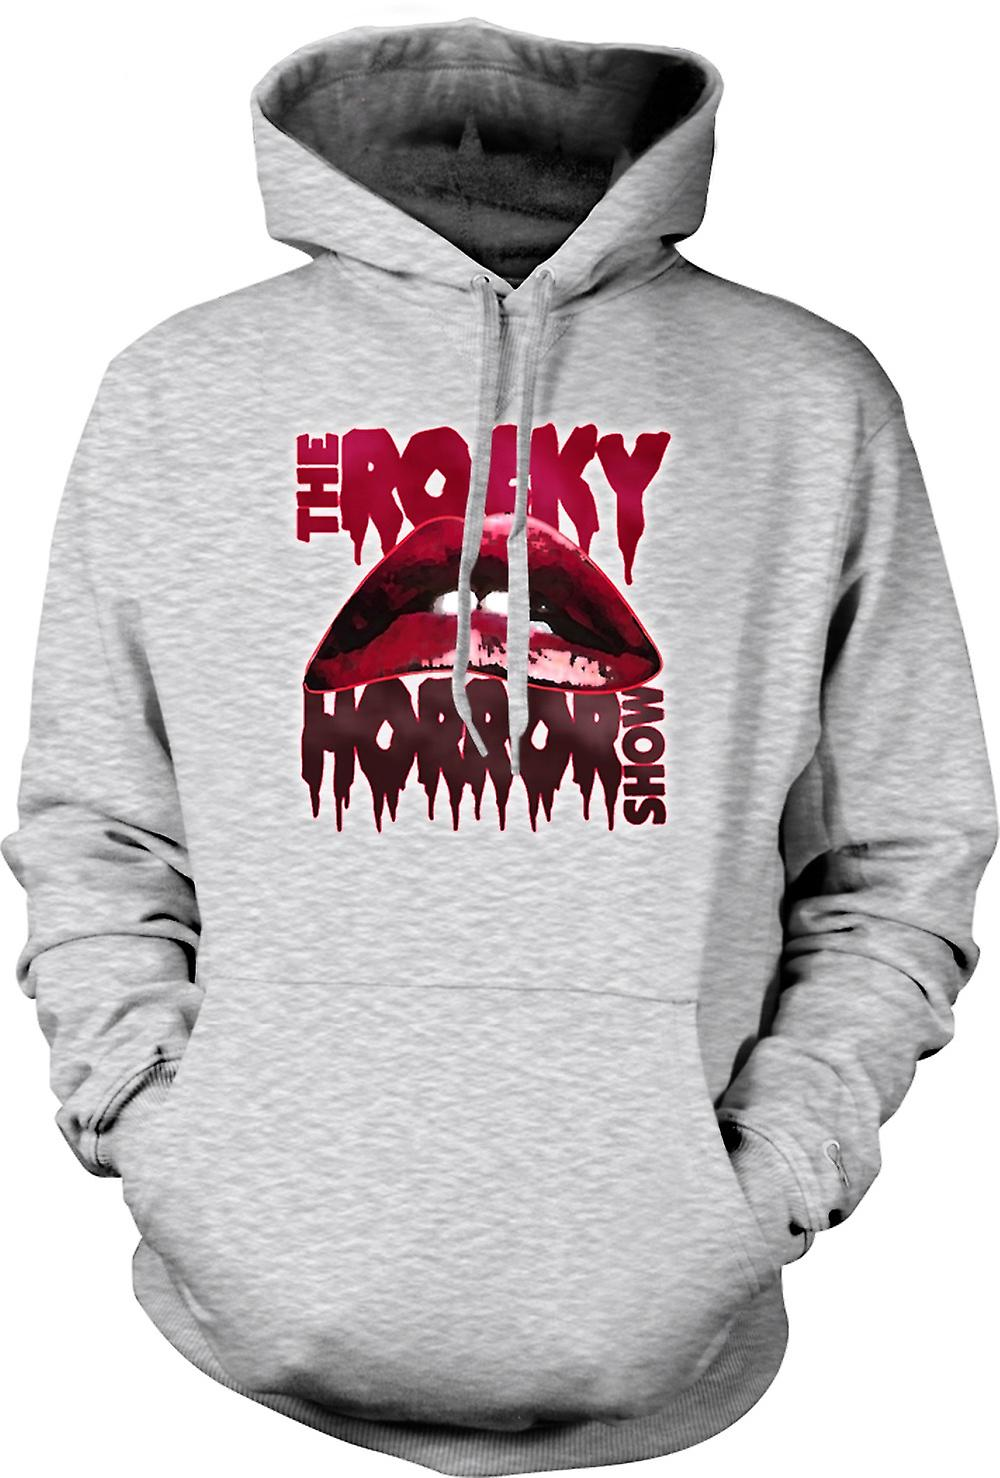 Mens Hoodie - Rocky Horror Show - Lips - Funny